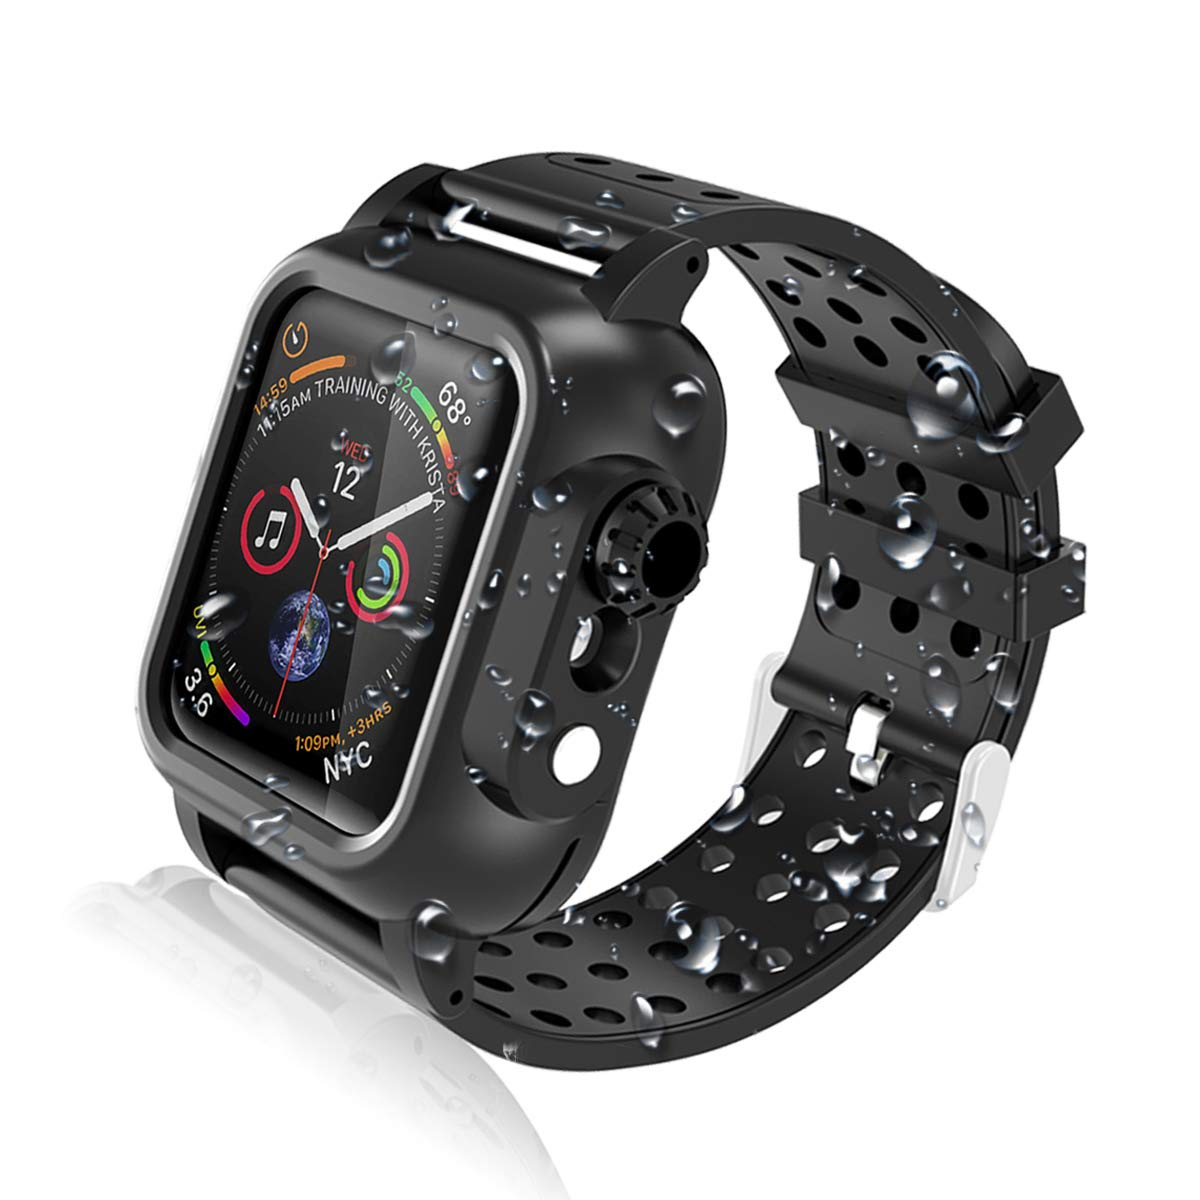 Realproof Apple Watch Case Series 4 44mm with Premium Soft Silicone Band, Waterproof Dropproof Shockproof Impact Resistant Rugged Protective iWatch 4 Case Bulit-in Screen Protector